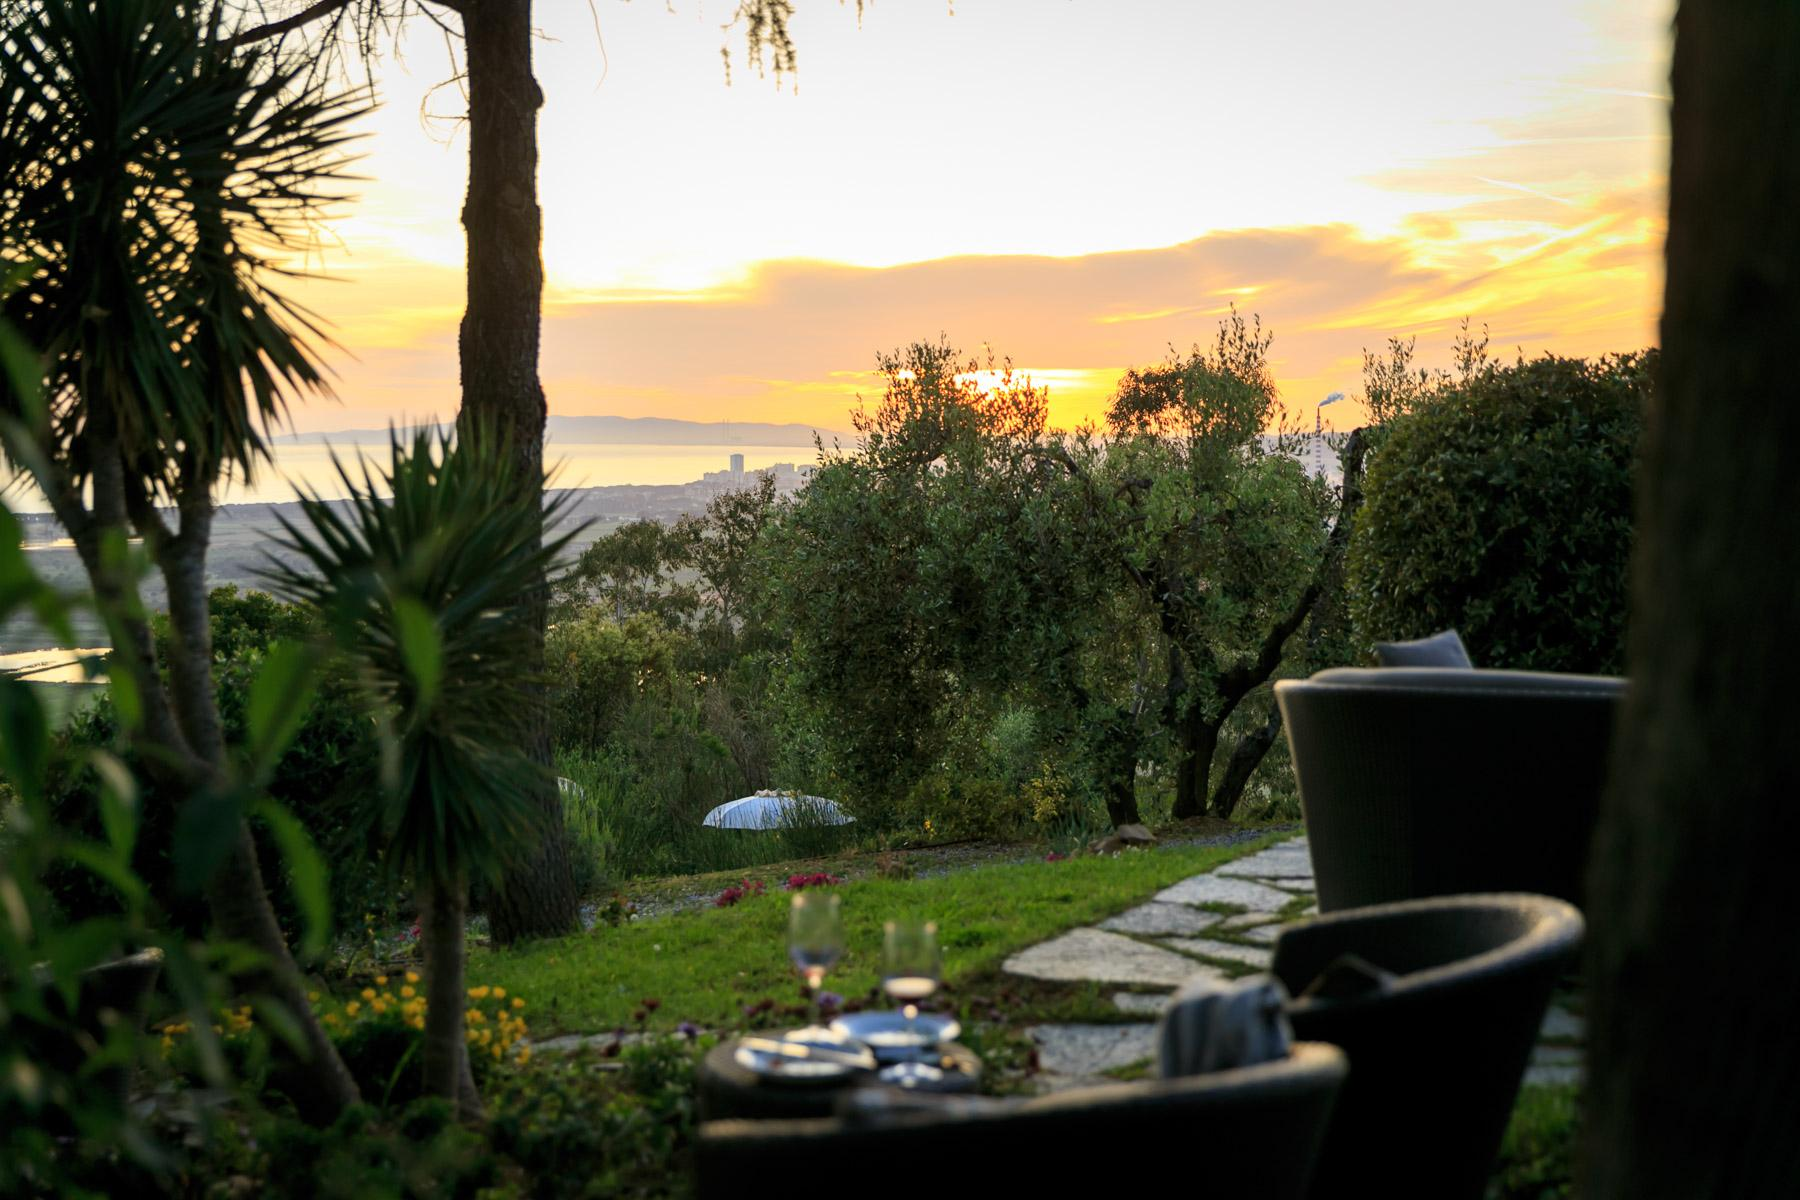 Historic Villa with stunning views over the Gulf of Scarlino - 45